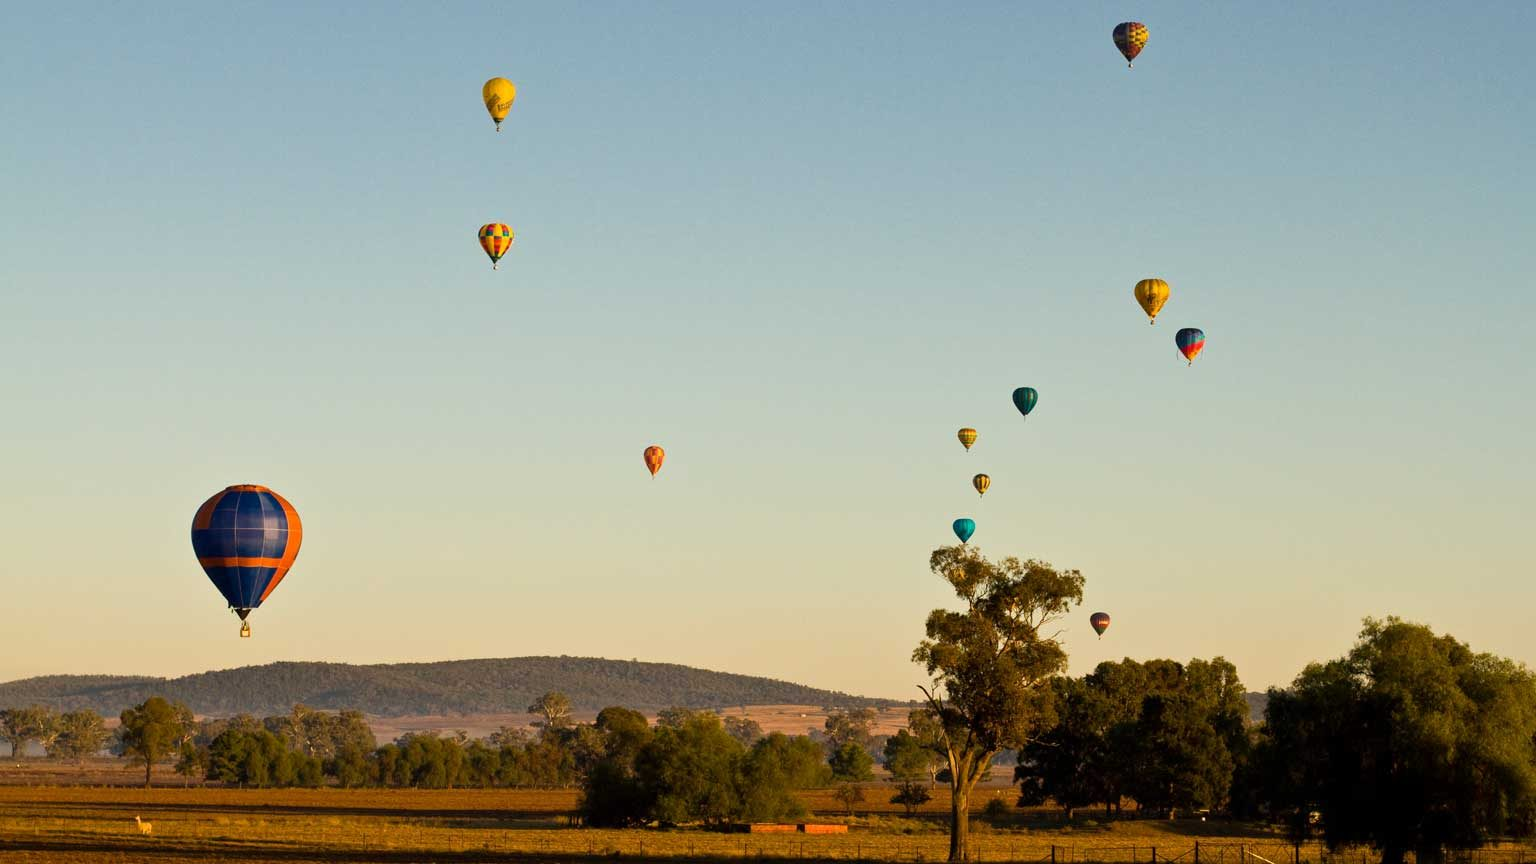 Australian Hot Air Ballooning Championship held in Canowindra, and it shows balloons approaching one of designated targets during morning flight.